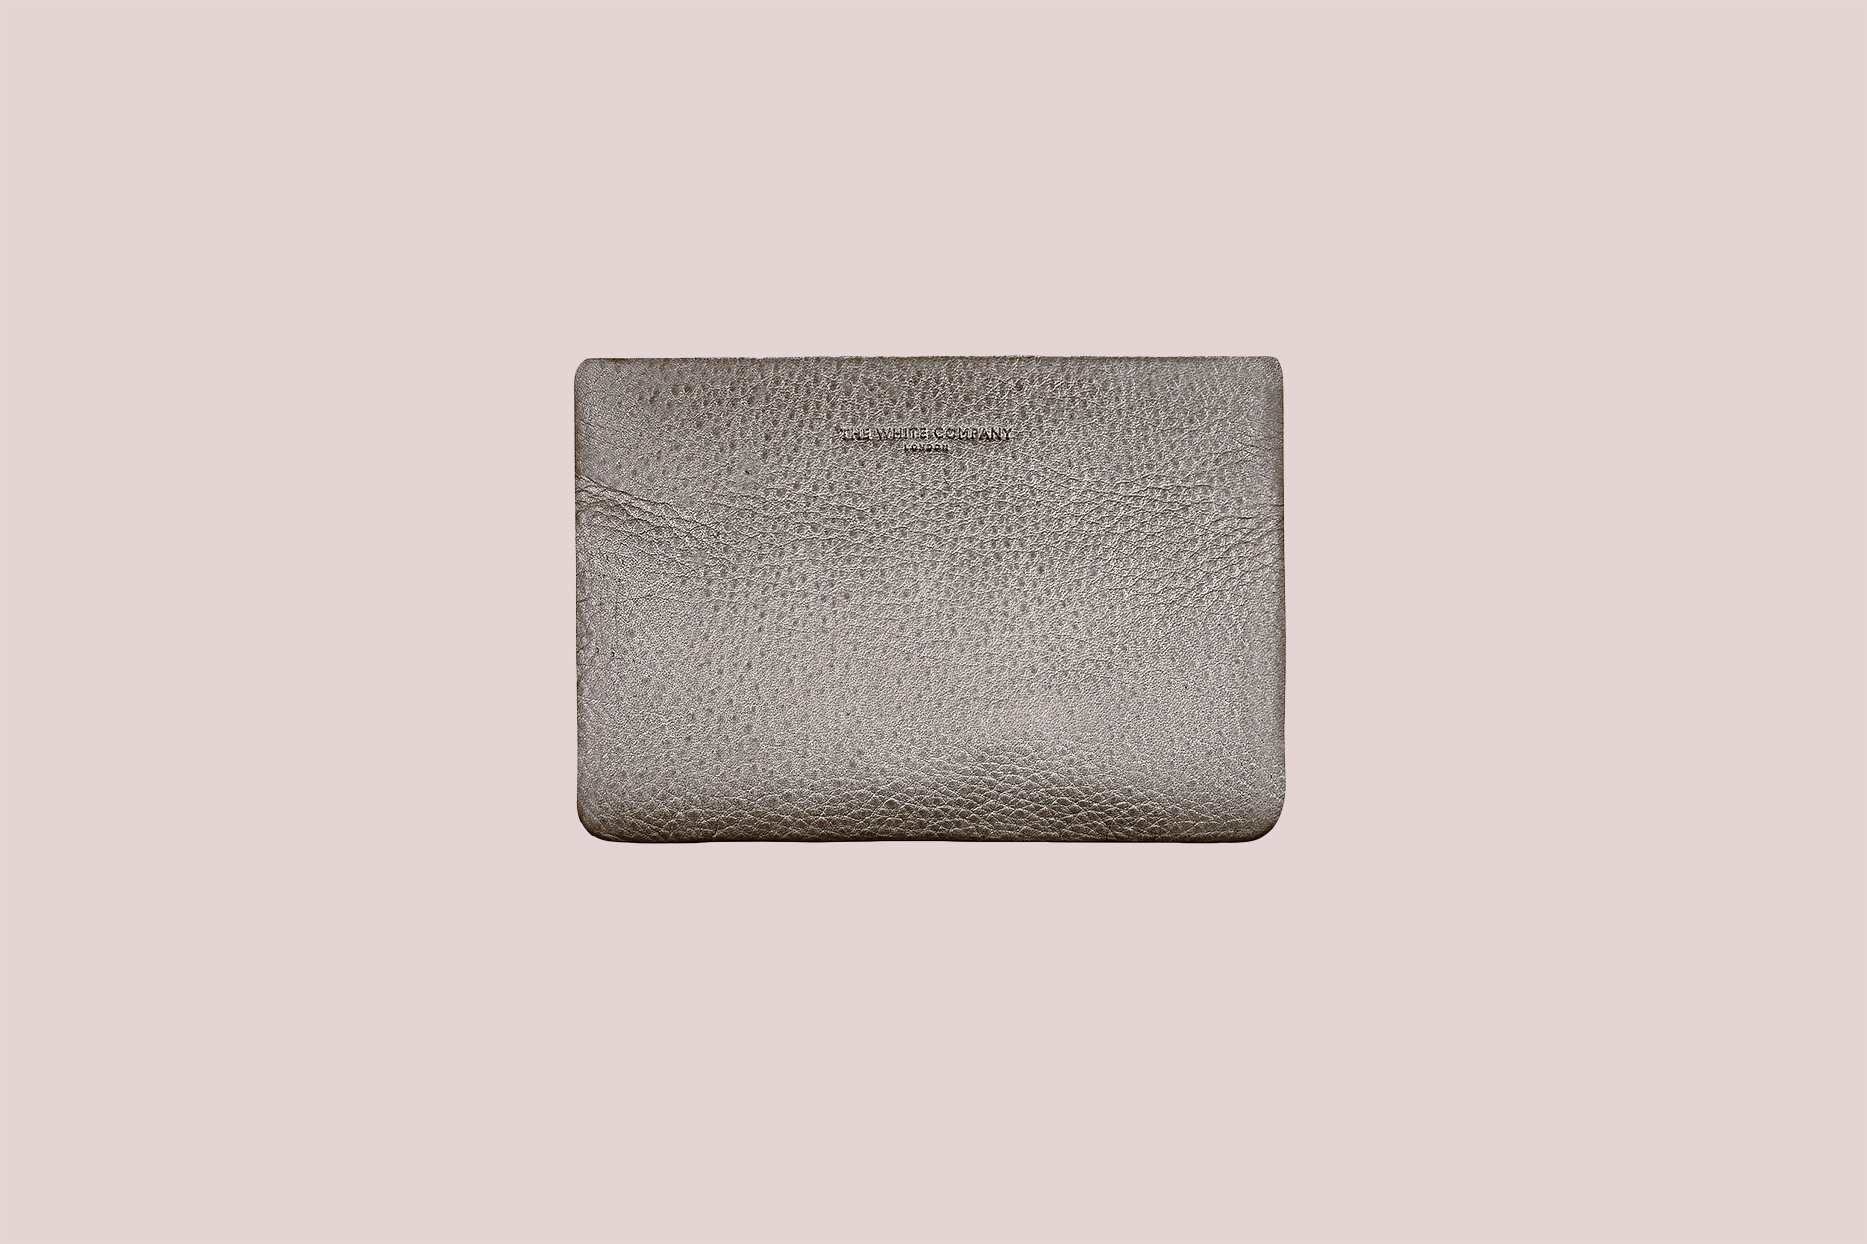 The White Company Leather Coin Pouch in Bronze